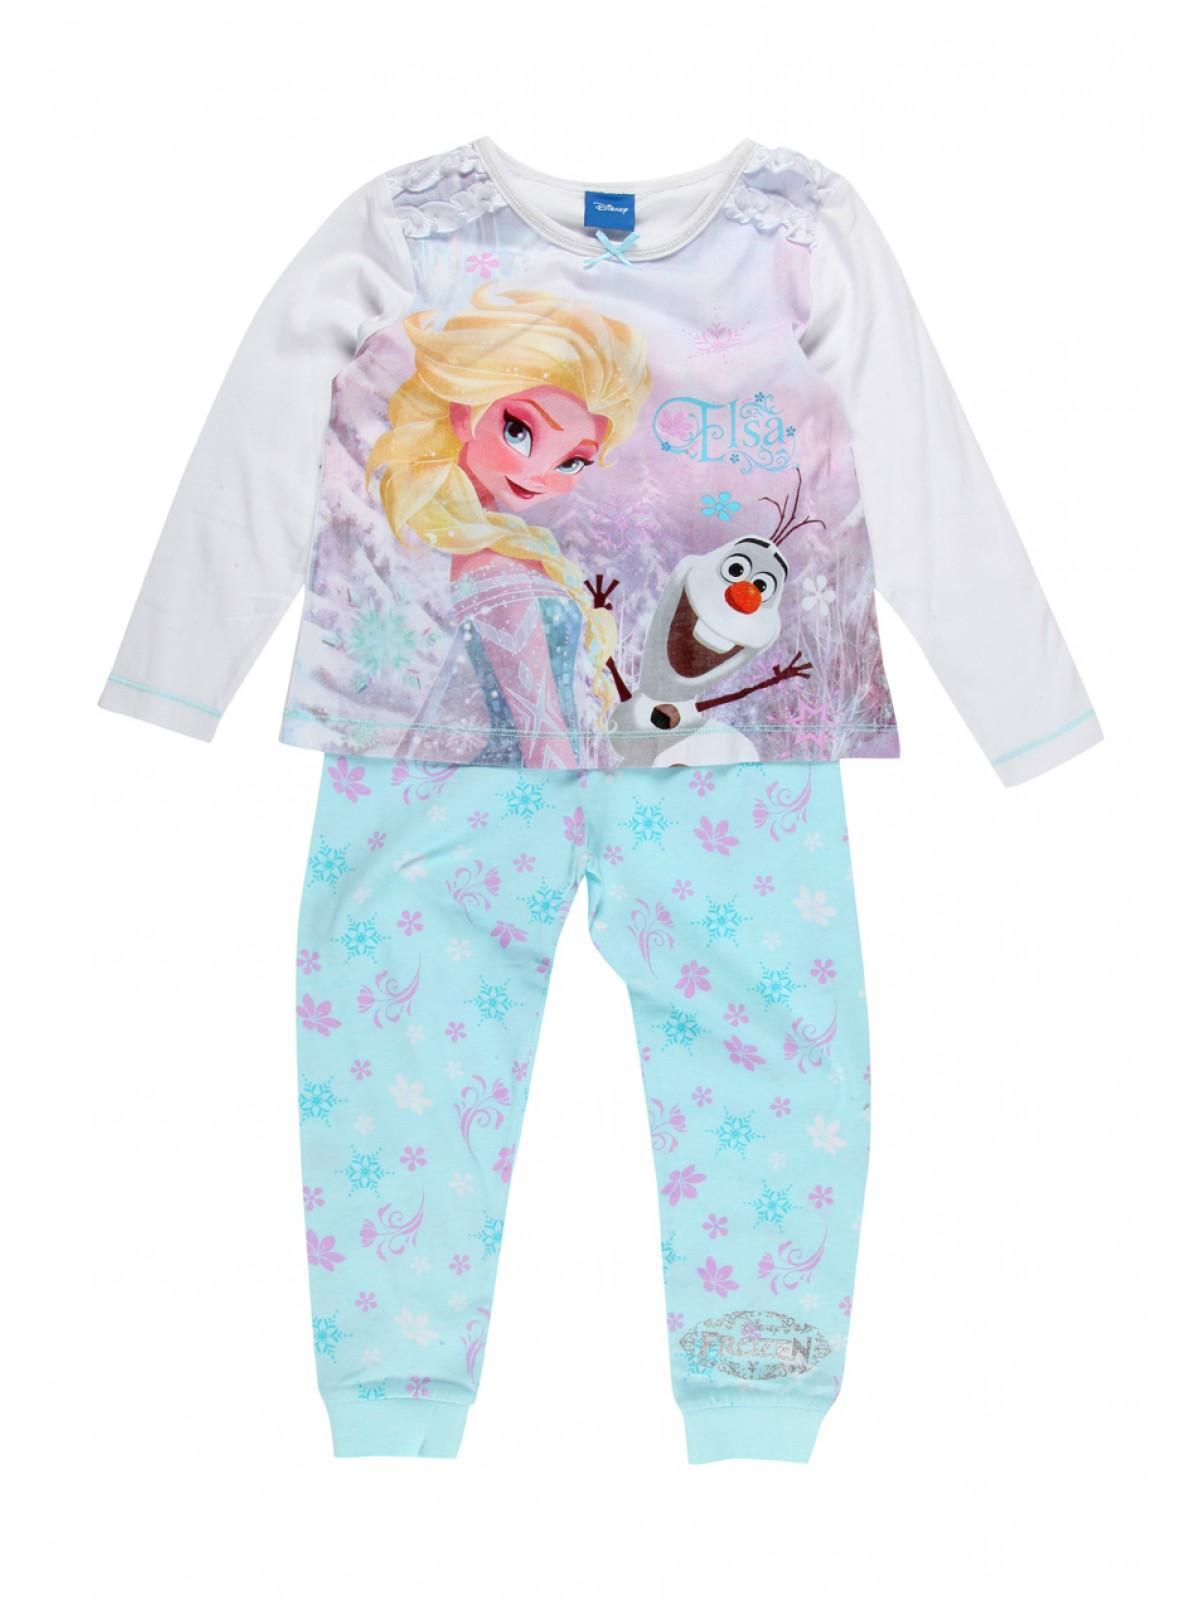 Girls Disney Frozen Pyjamas | Peacocks